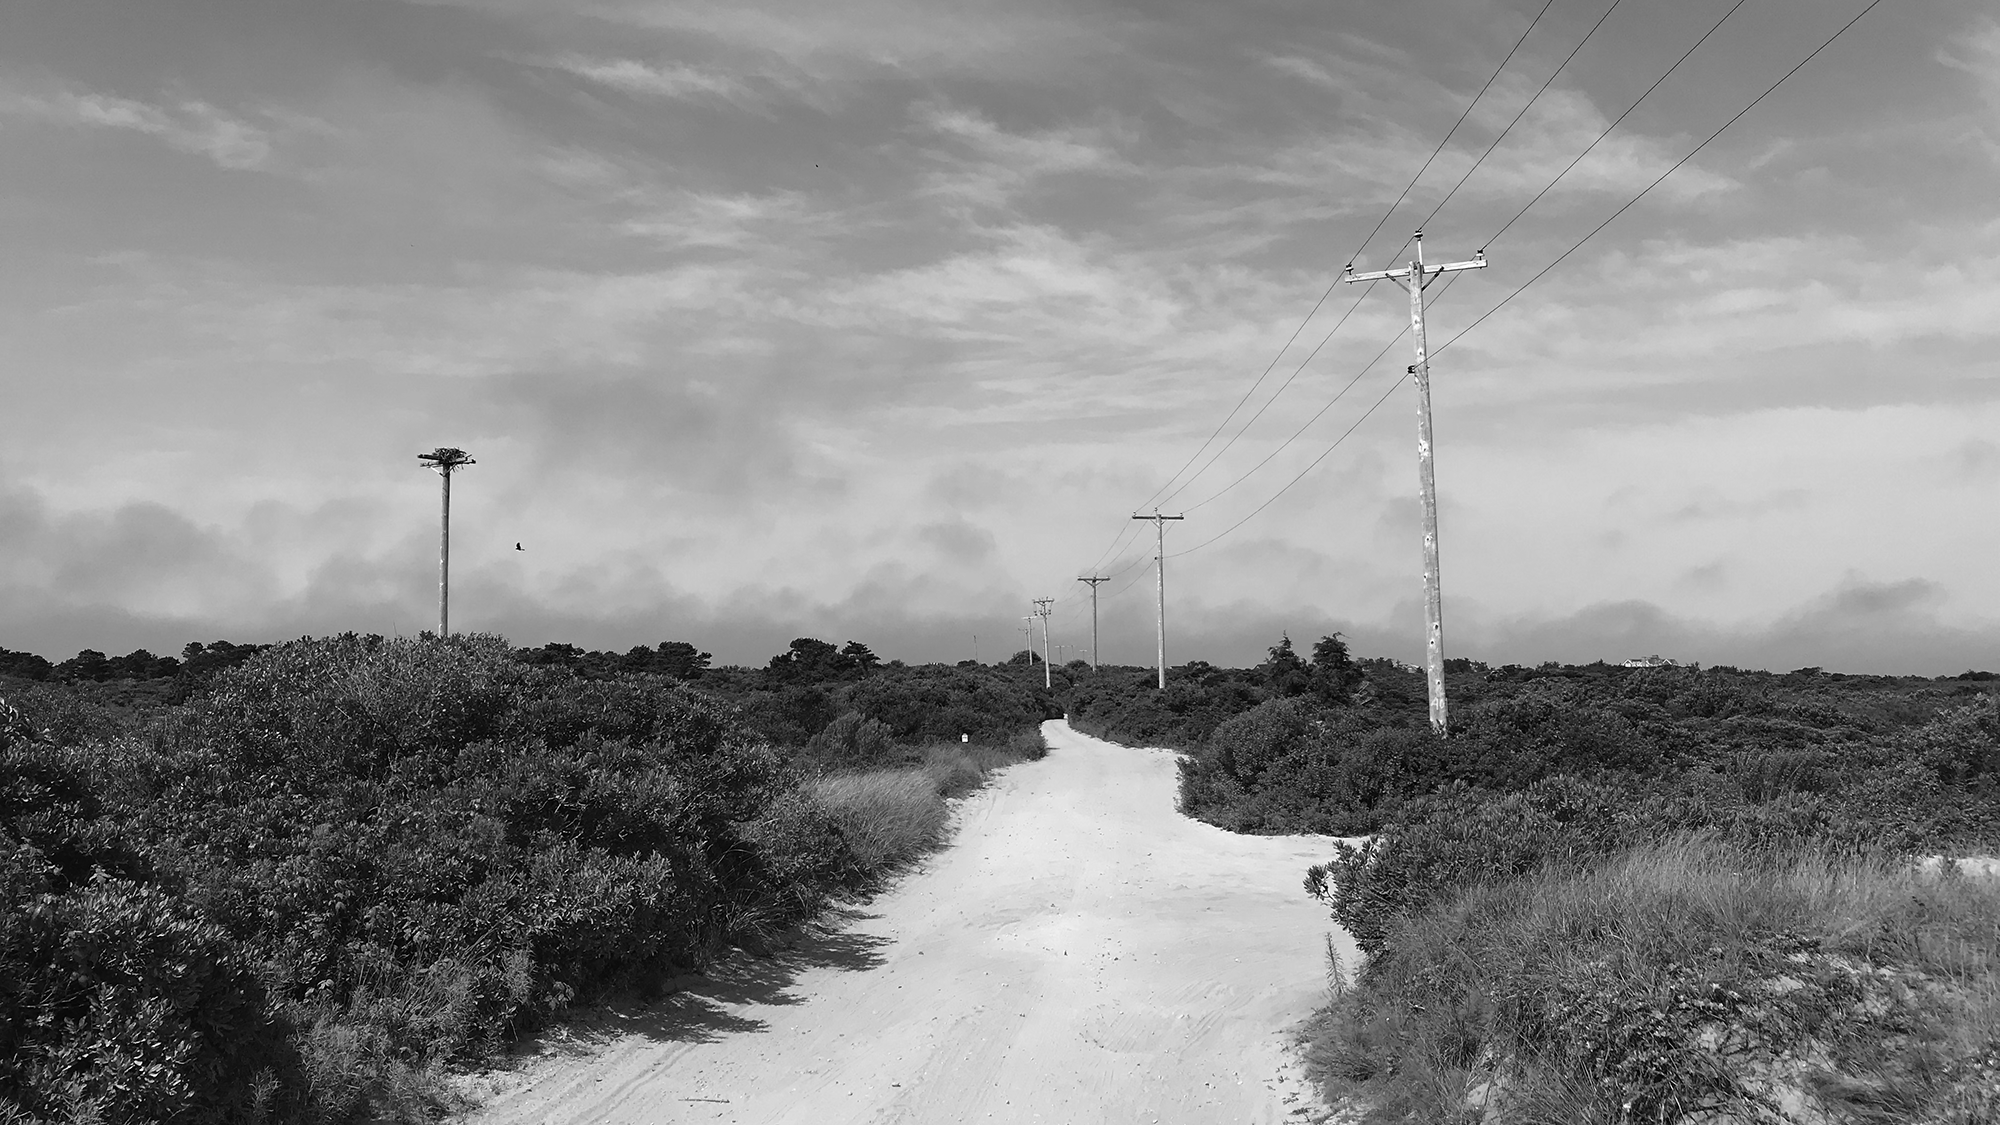 A sandy path with telephone poles on either side